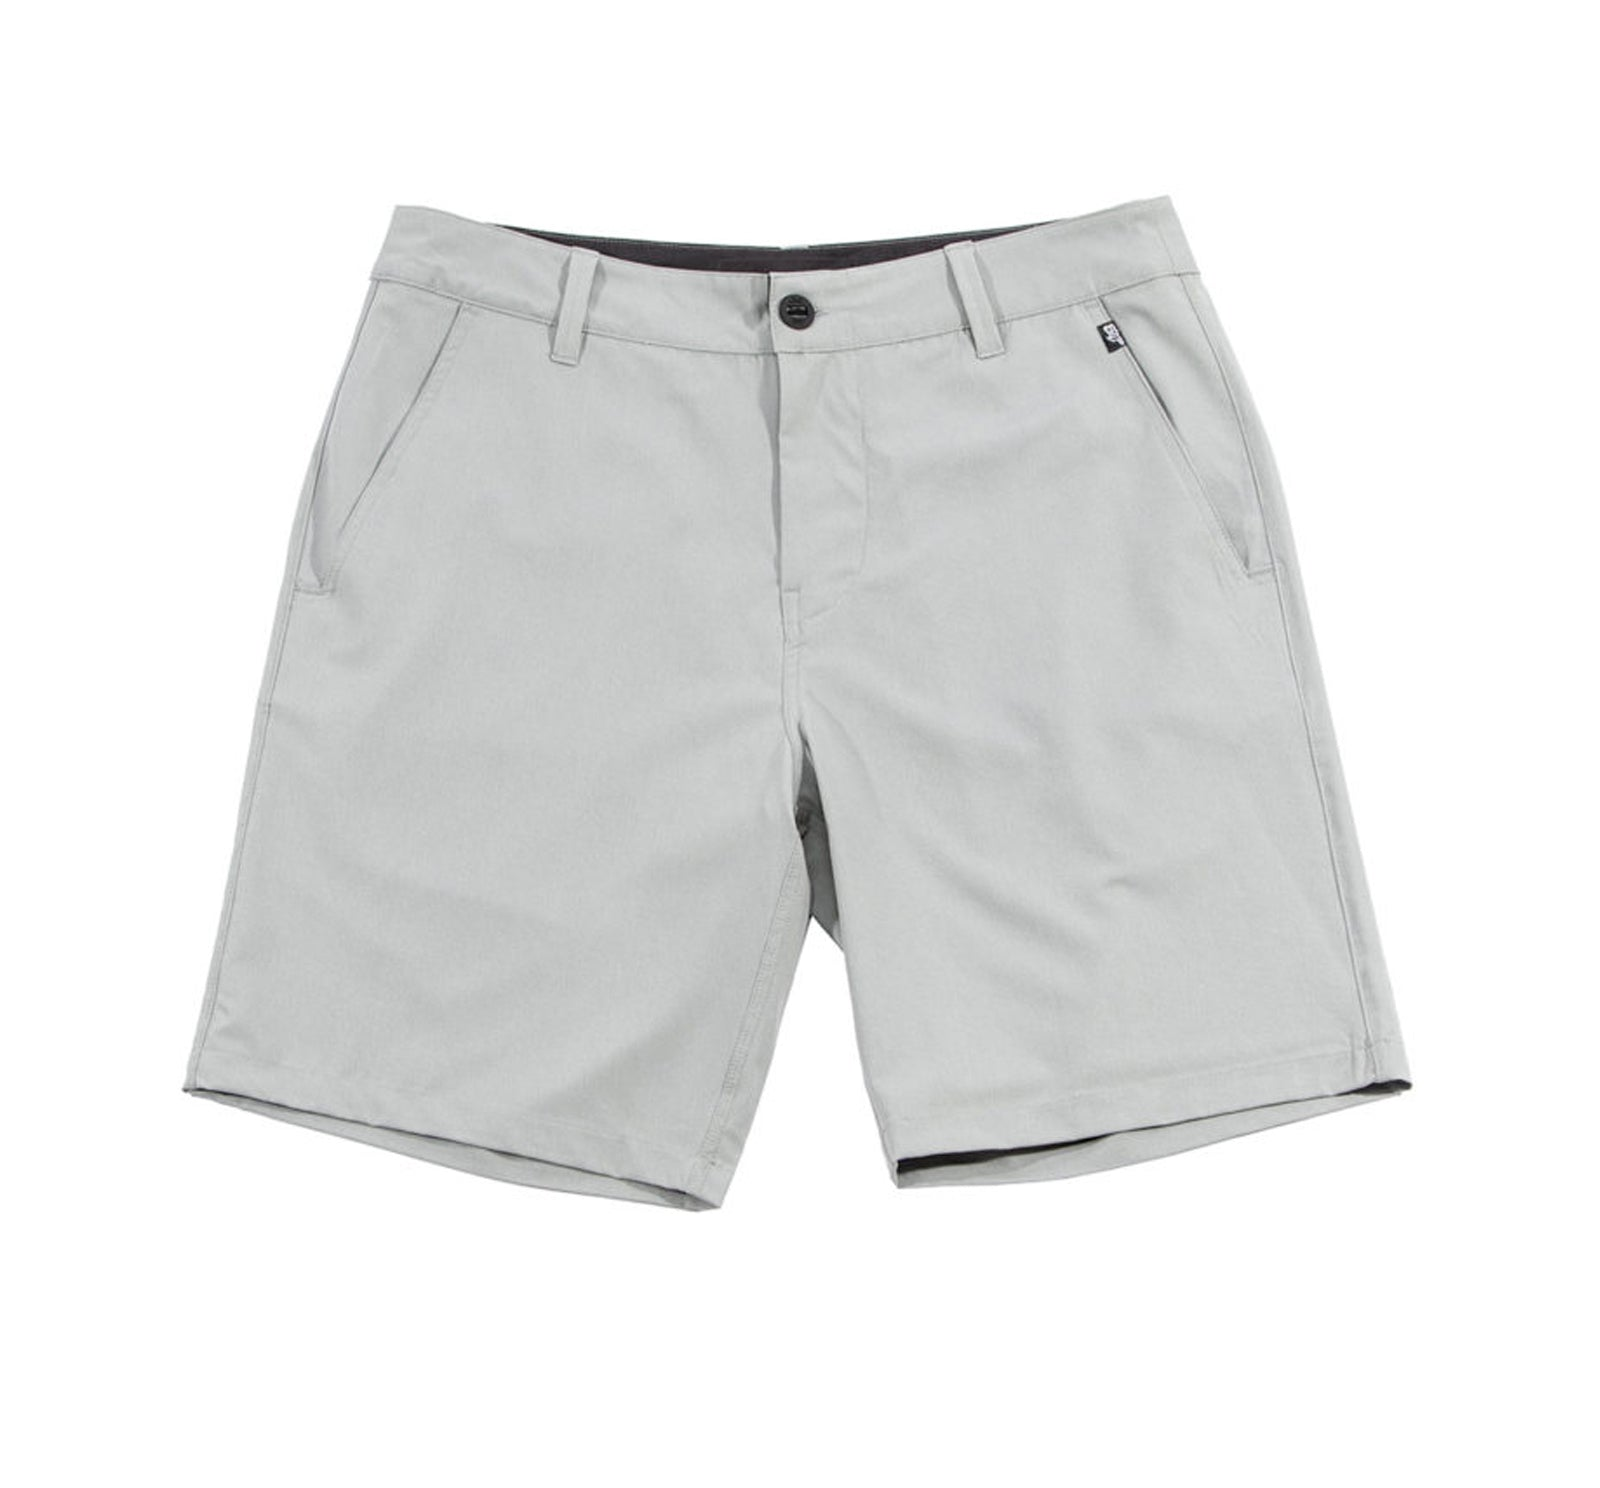 "Lost Master Hybrid Men's 19"" Walkshort grey"